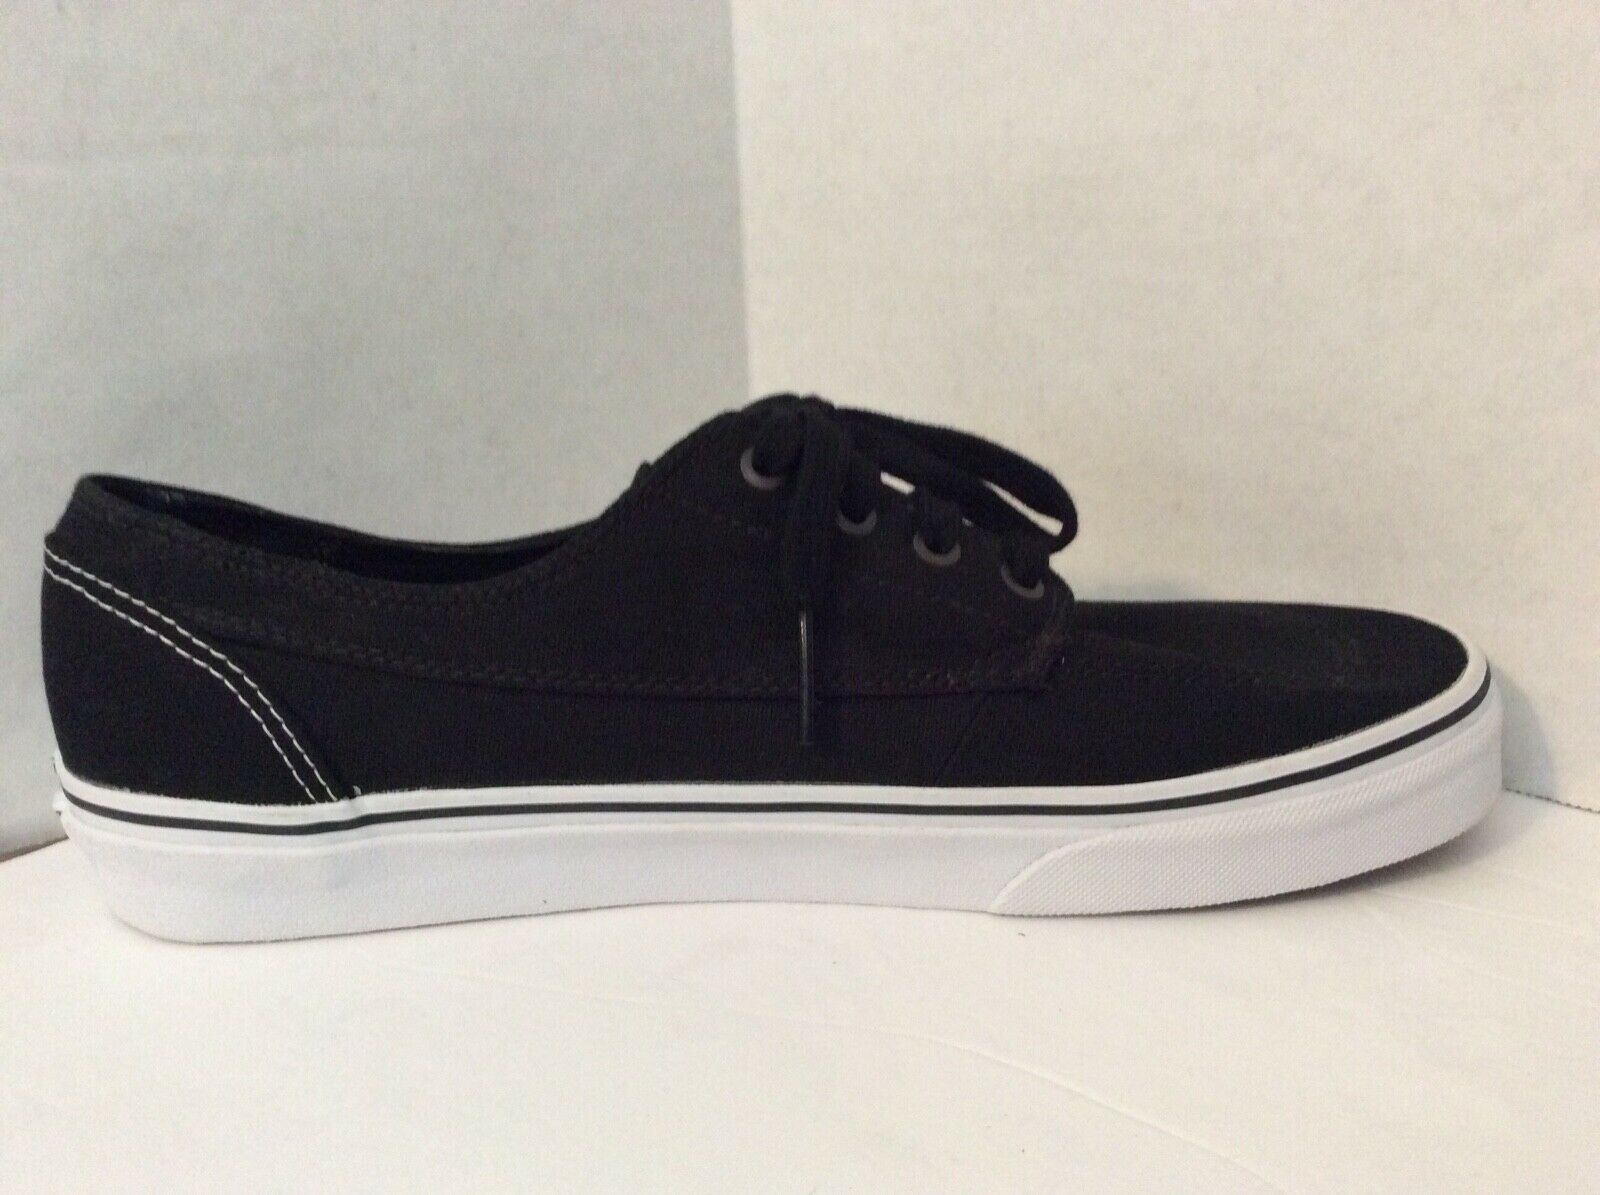 Vans Shoes Men's Size 11